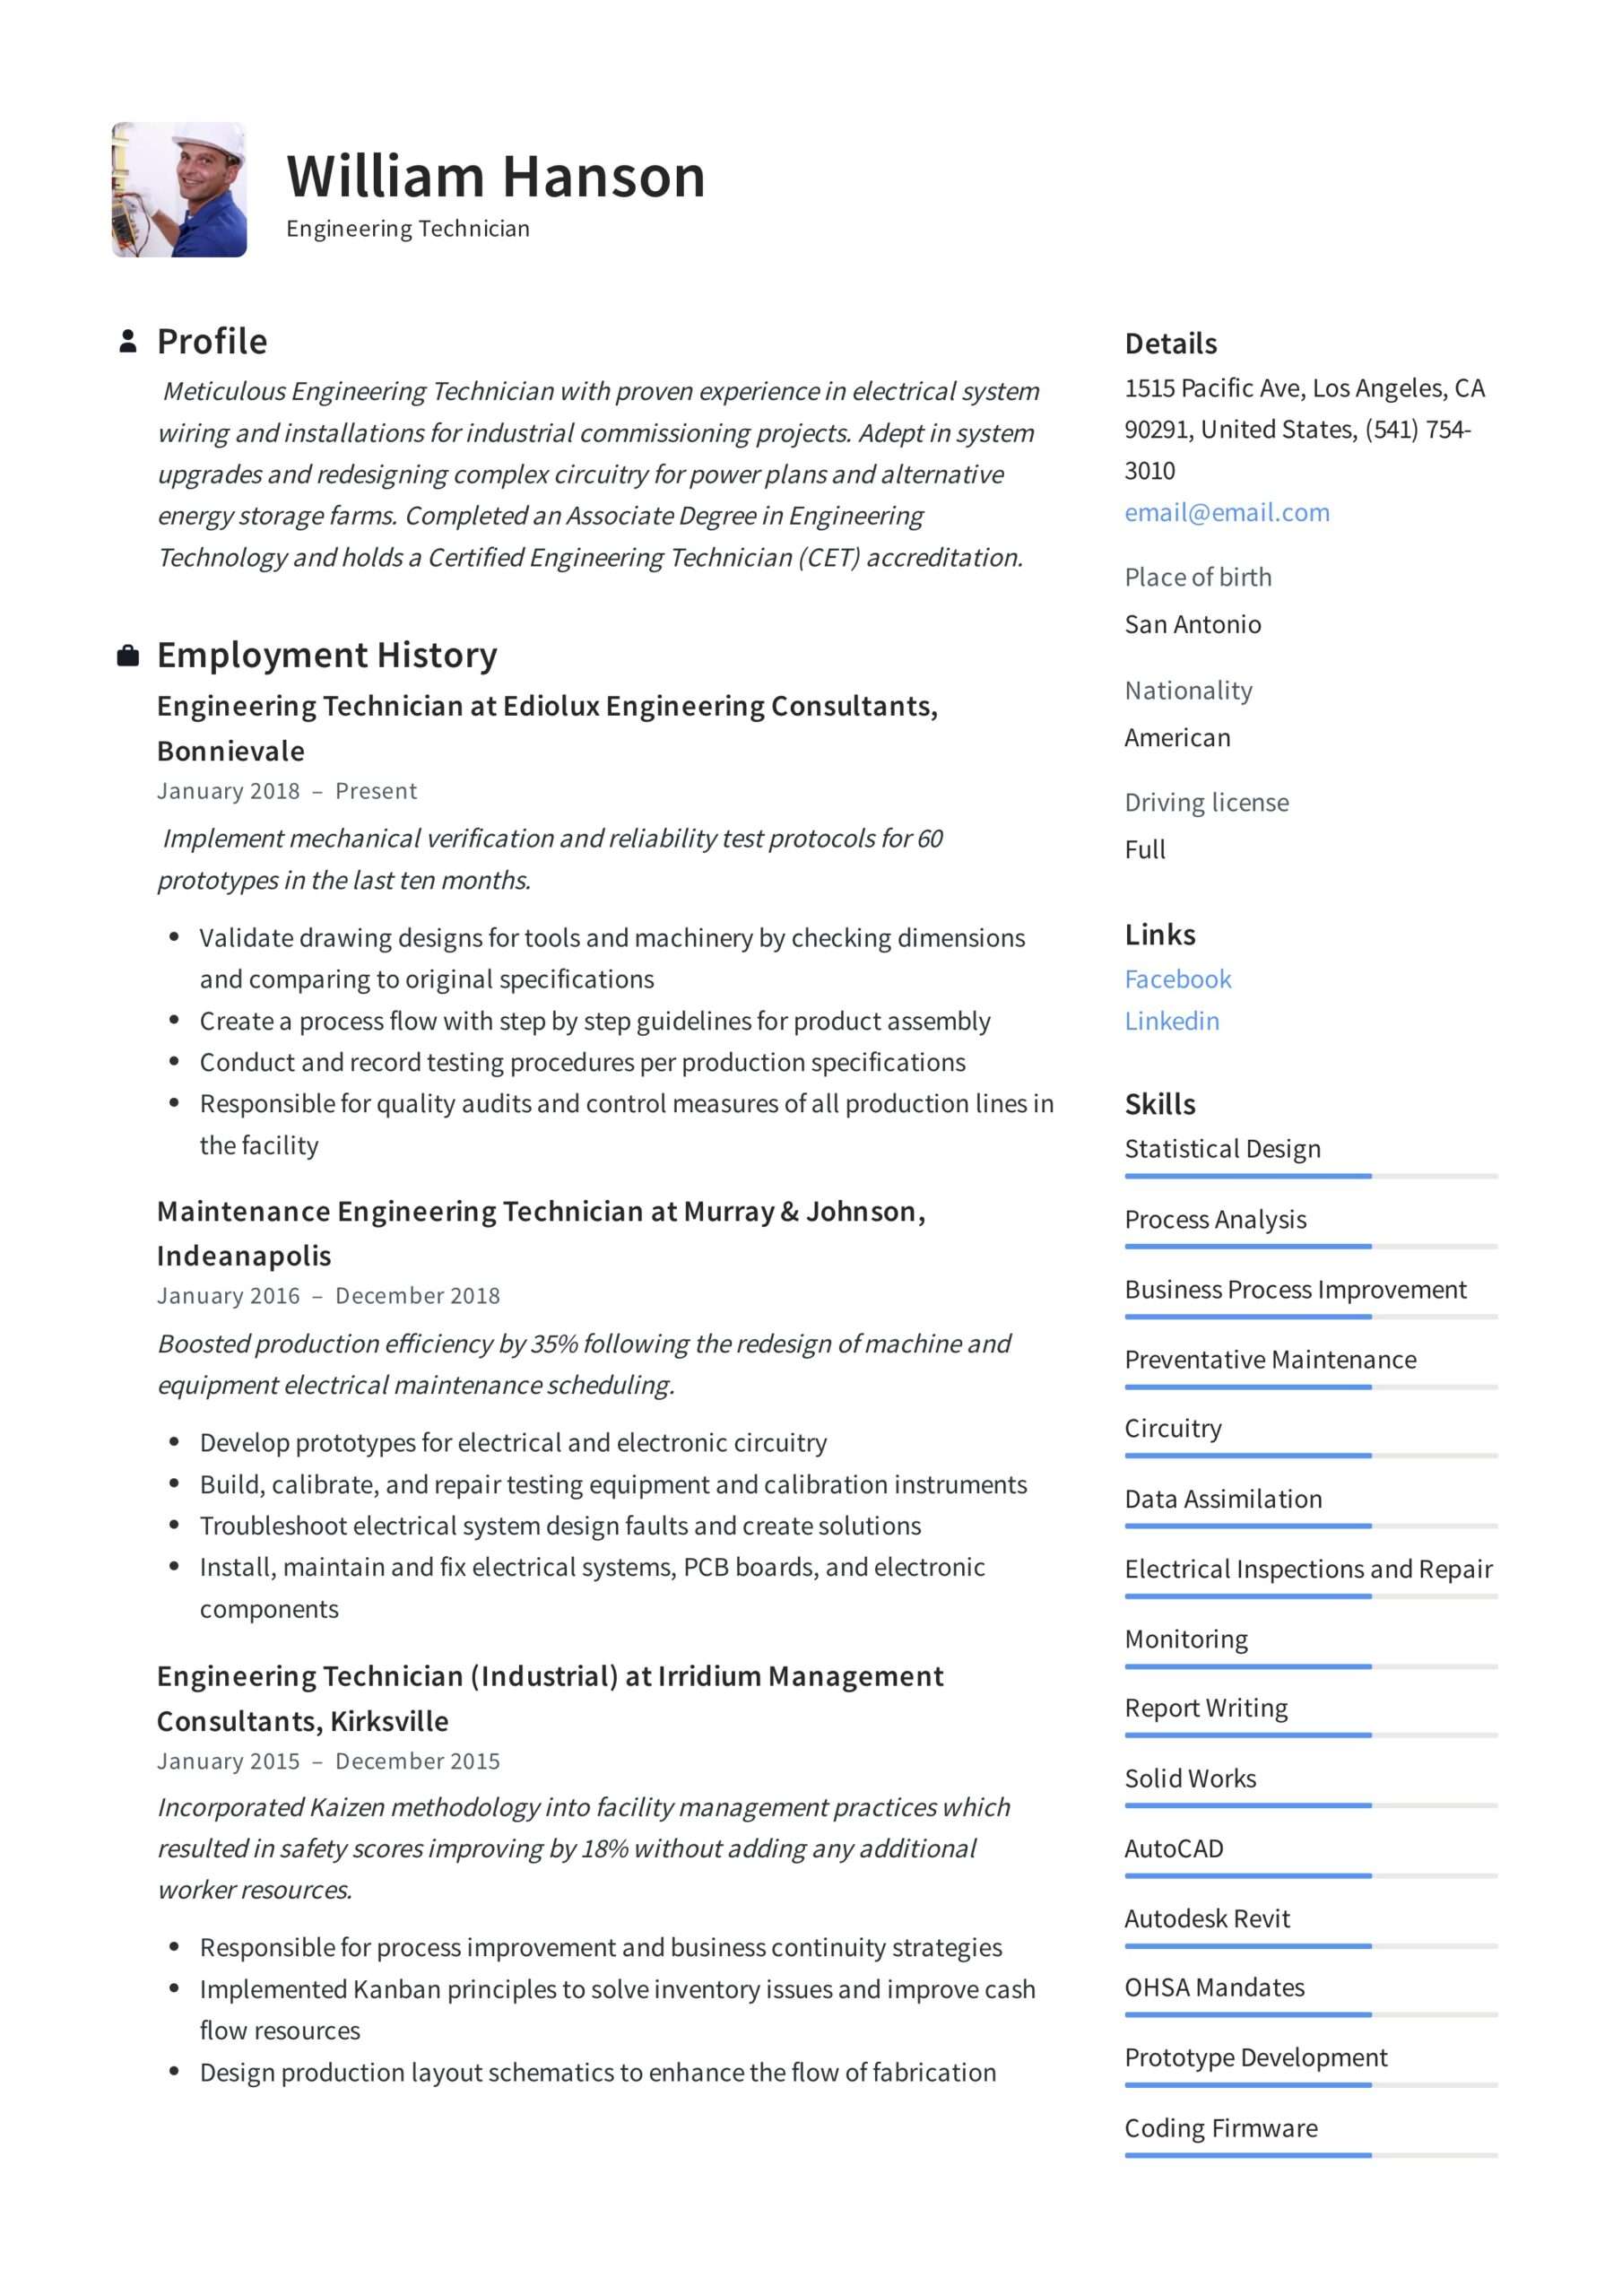 engineering technician resume writing guide templates civil technologist sample talend on Resume Civil Engineering Technologist Resume Sample